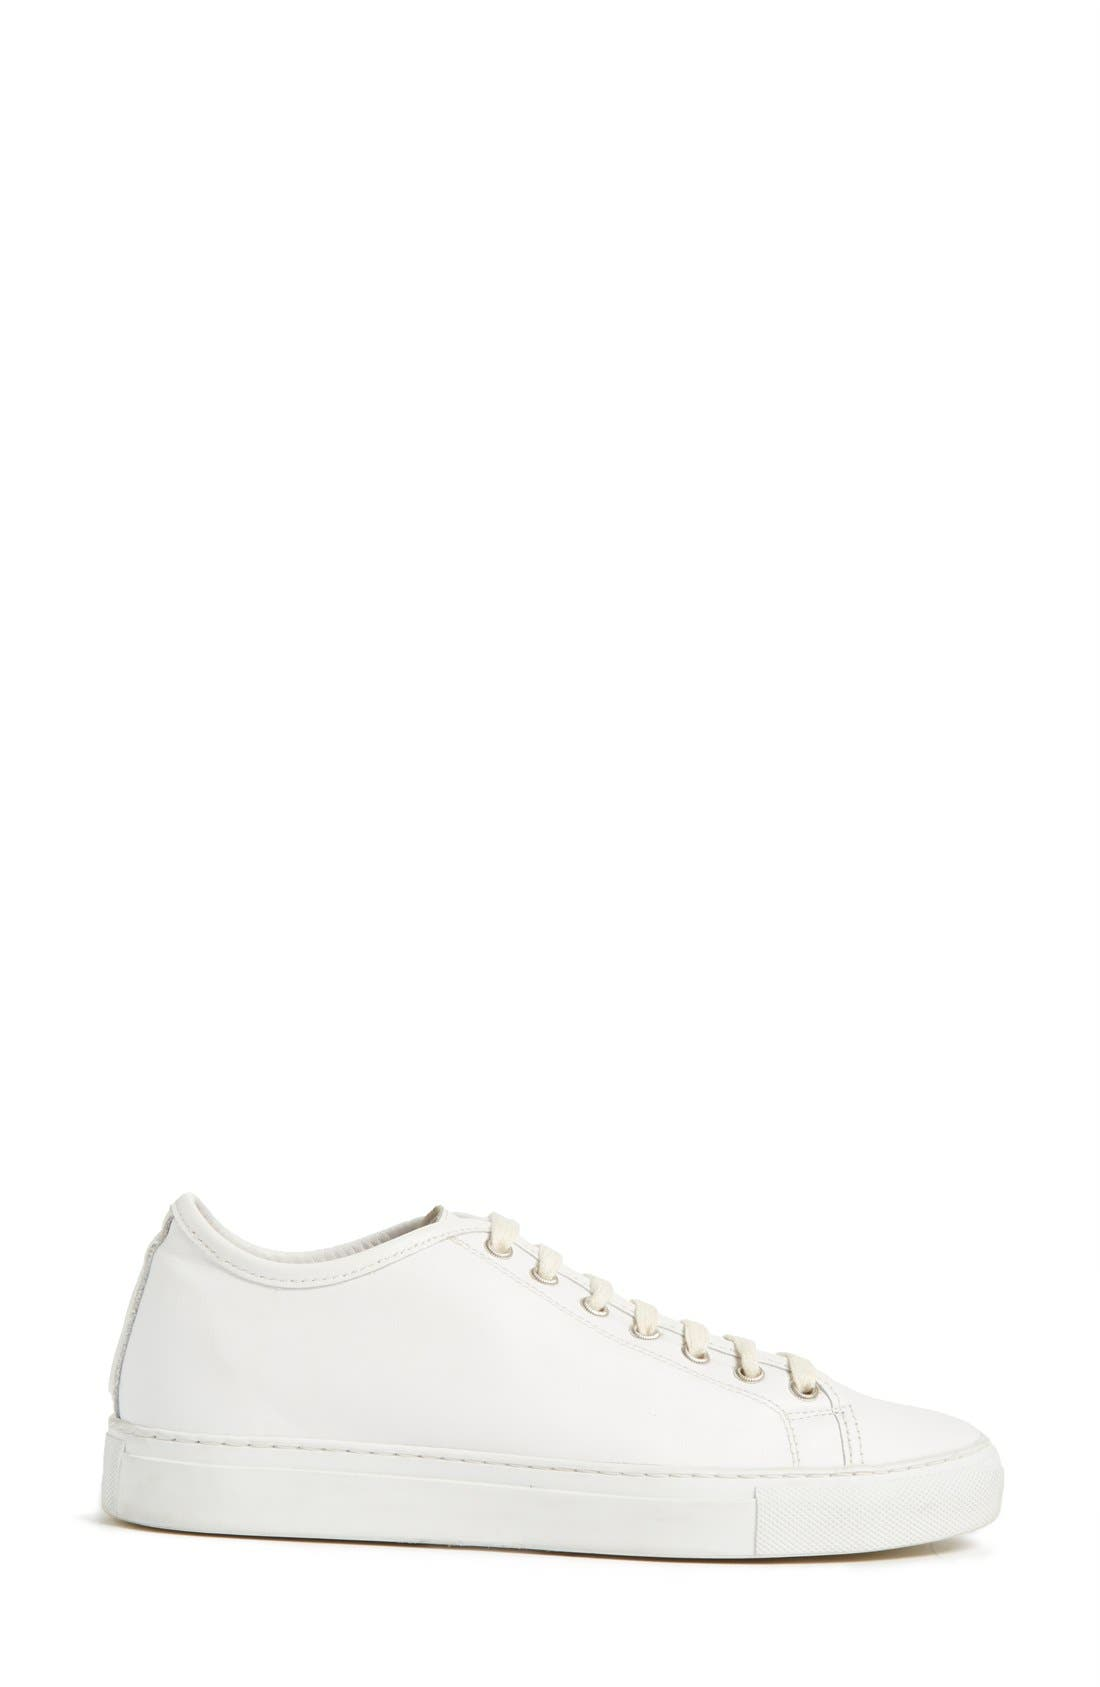 Alternate Image 3  - Sofie D'Hoore 'Frida' Sneaker (Women)